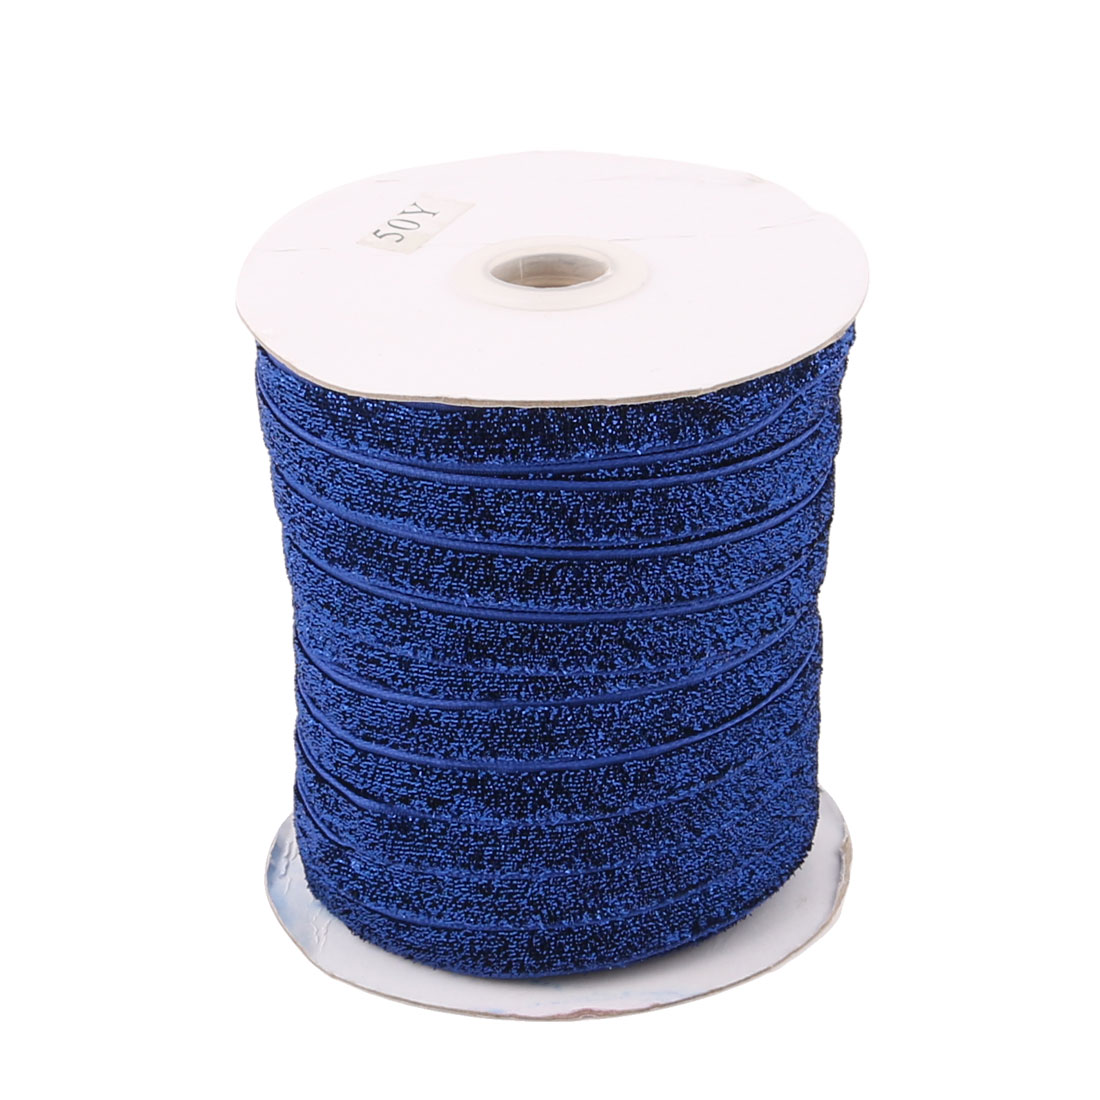 Festival Velvet DIY Appliques Decorations Ribbon Royal Blue 50 Yard 1cm Width